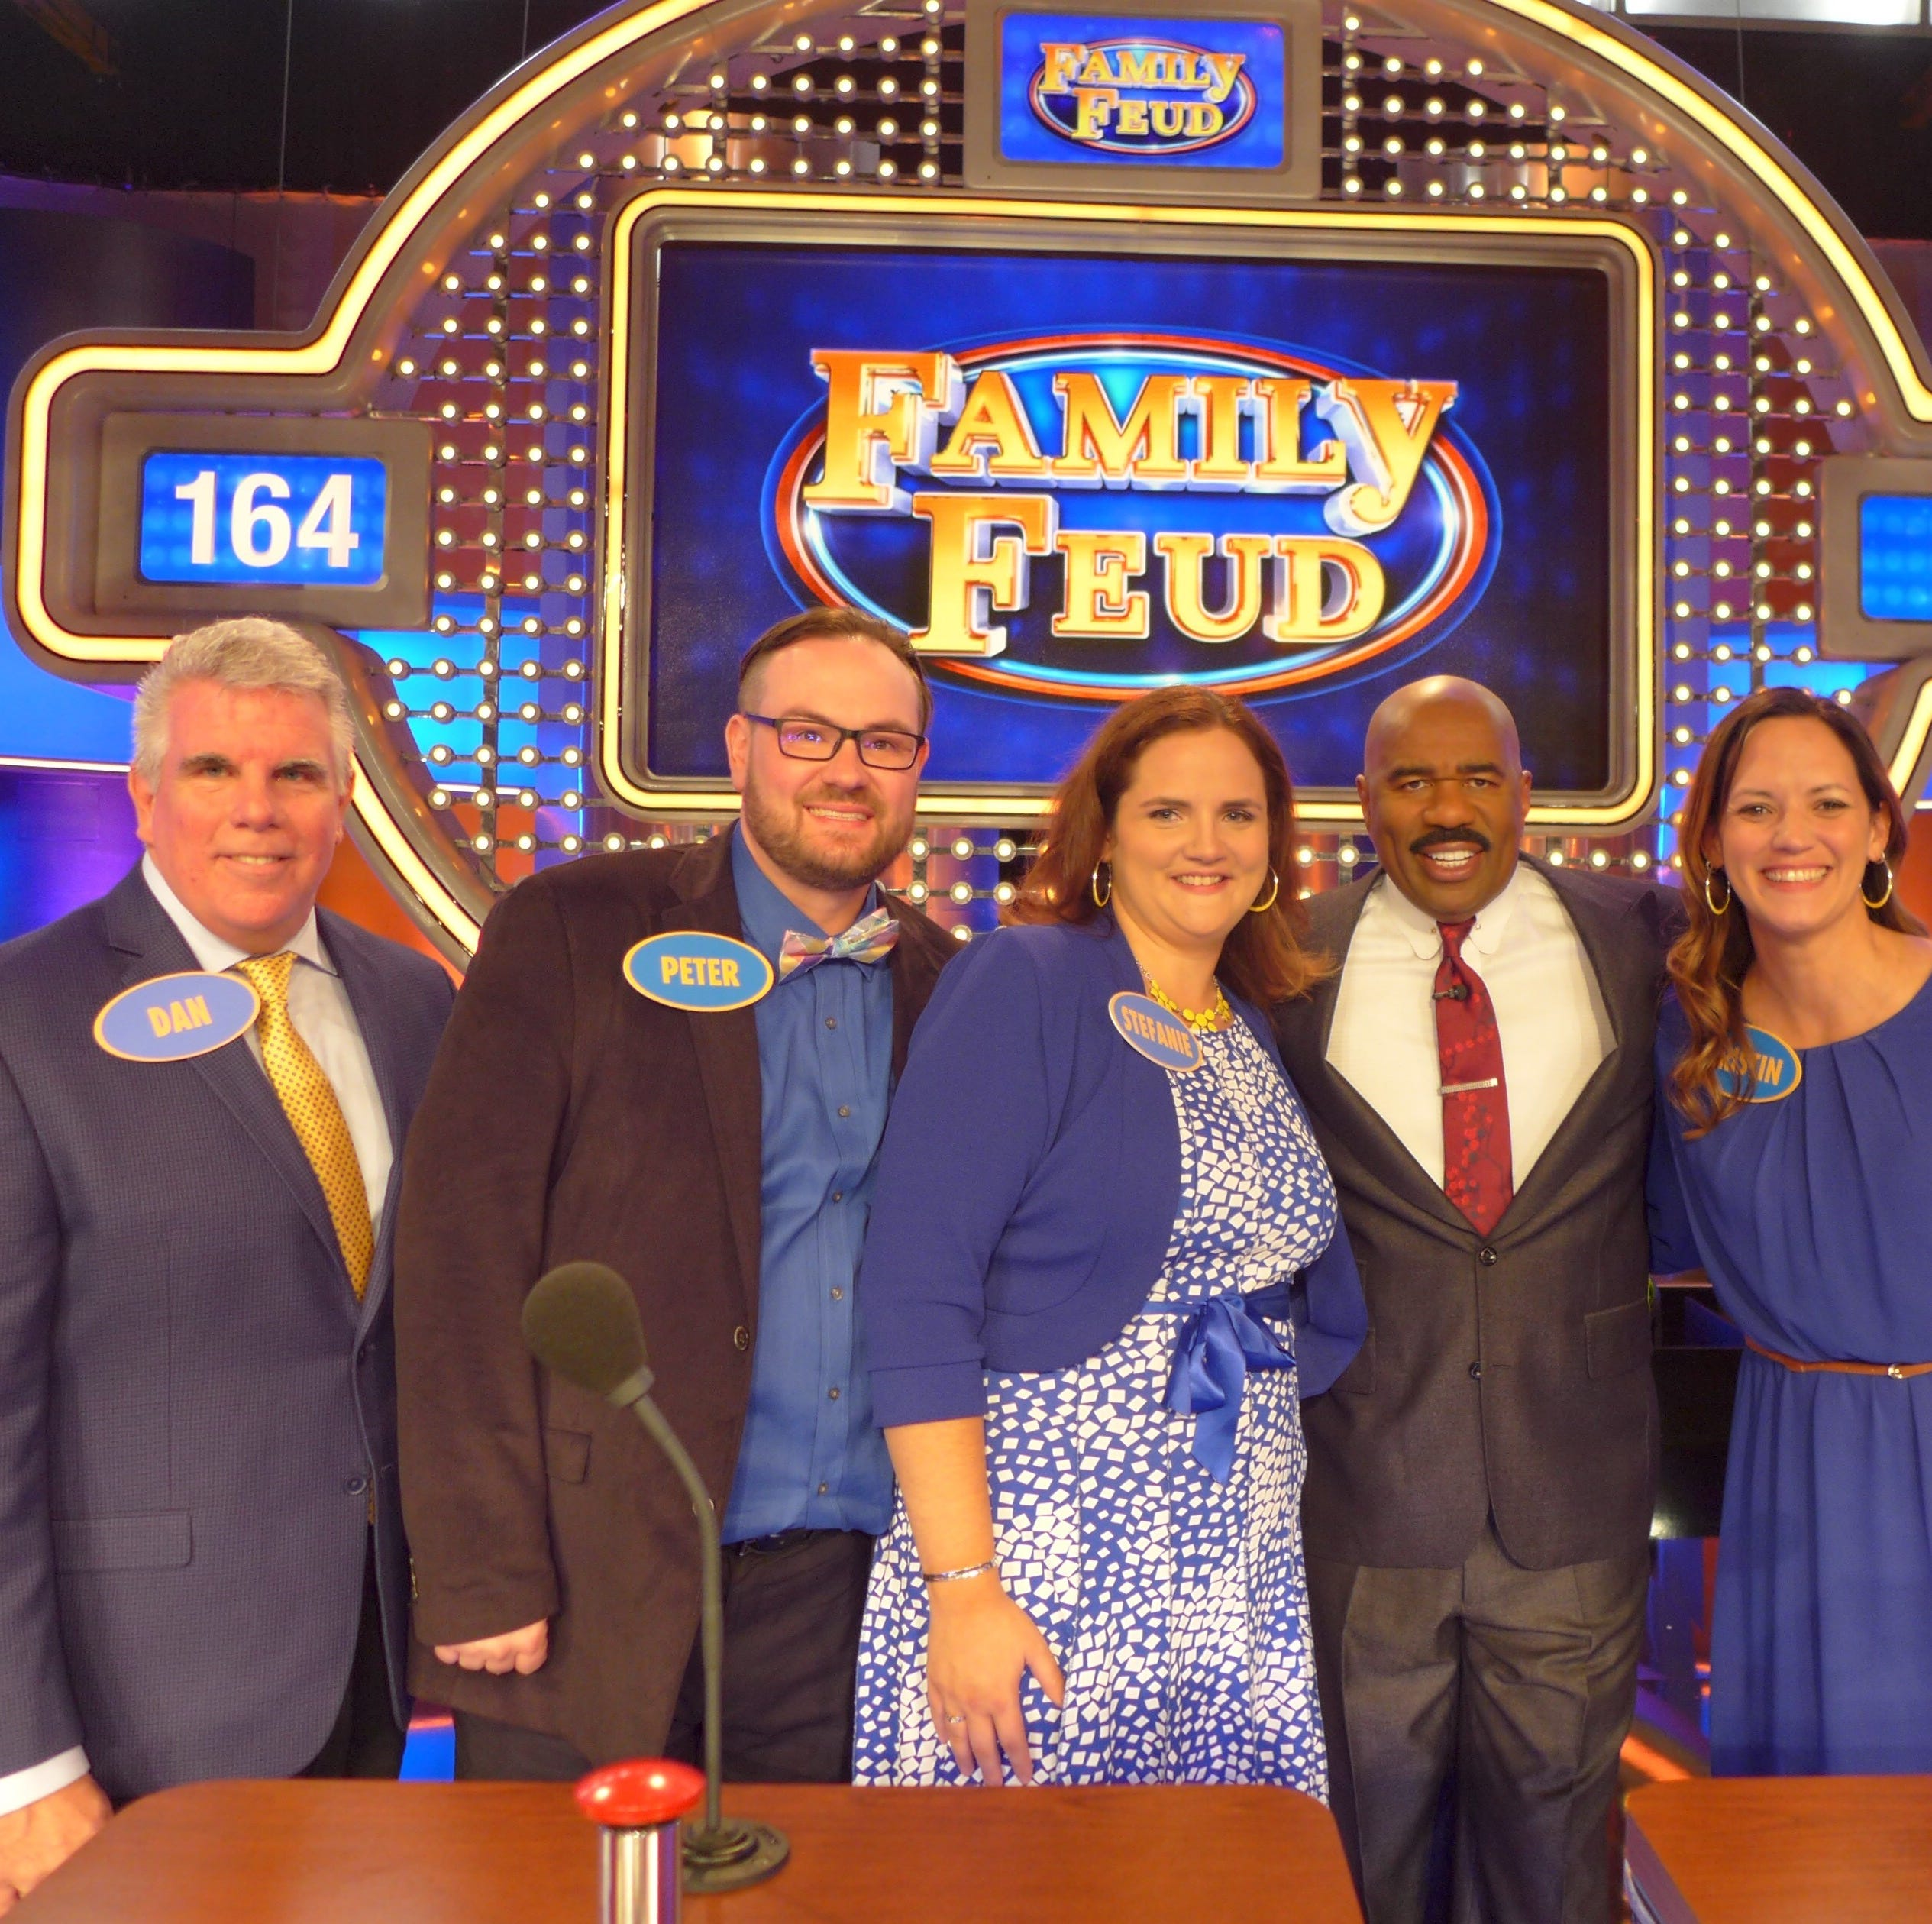 Peter Hernet of NEW Piano Guys and his Oshkosh family to appear on 'Family Feud'